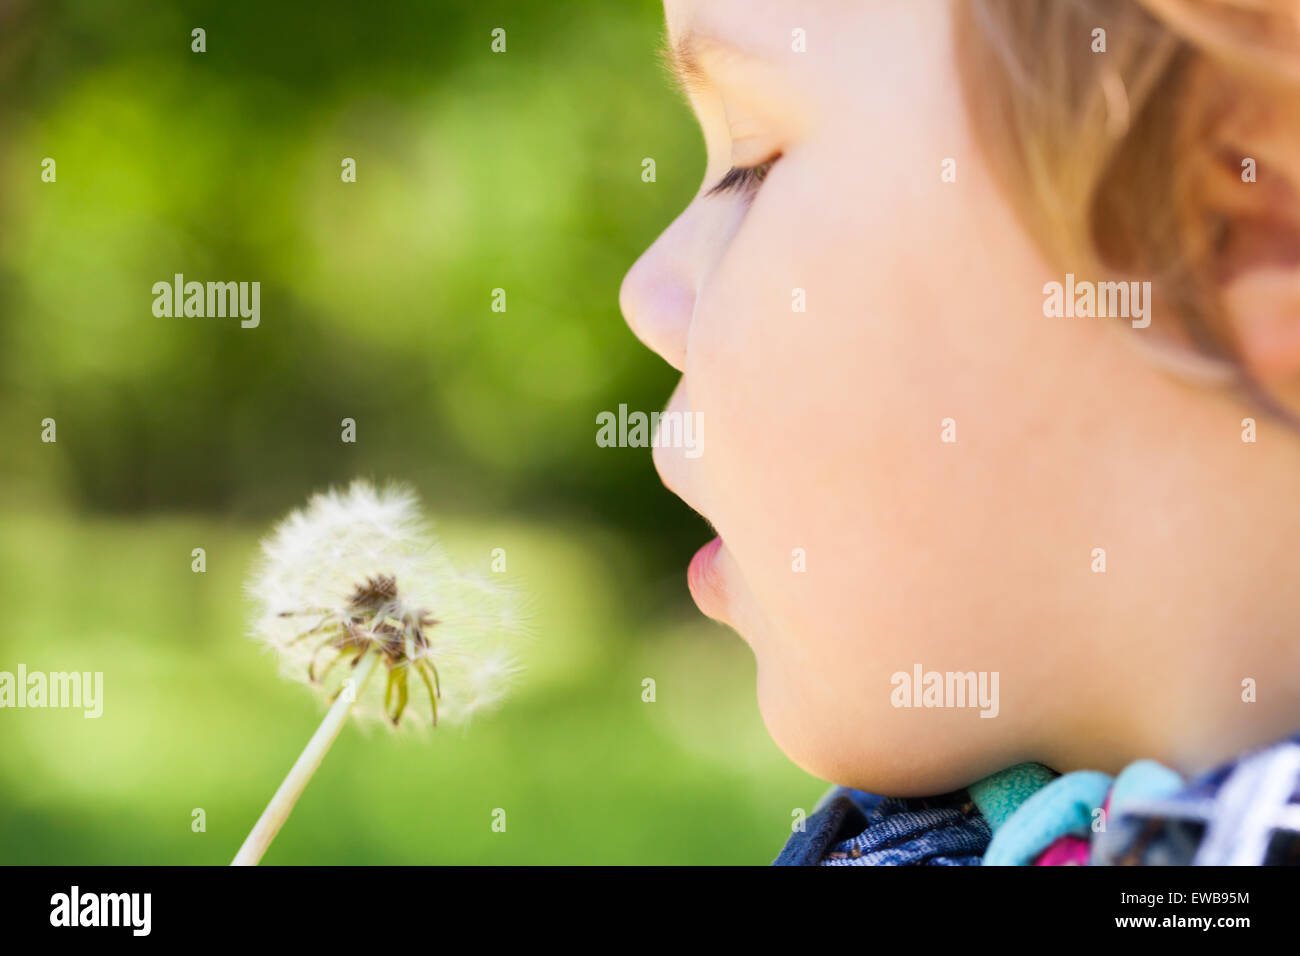 Caucasian blond baby girl and dandelion flower in a park, selective focus on lips Stock Photo